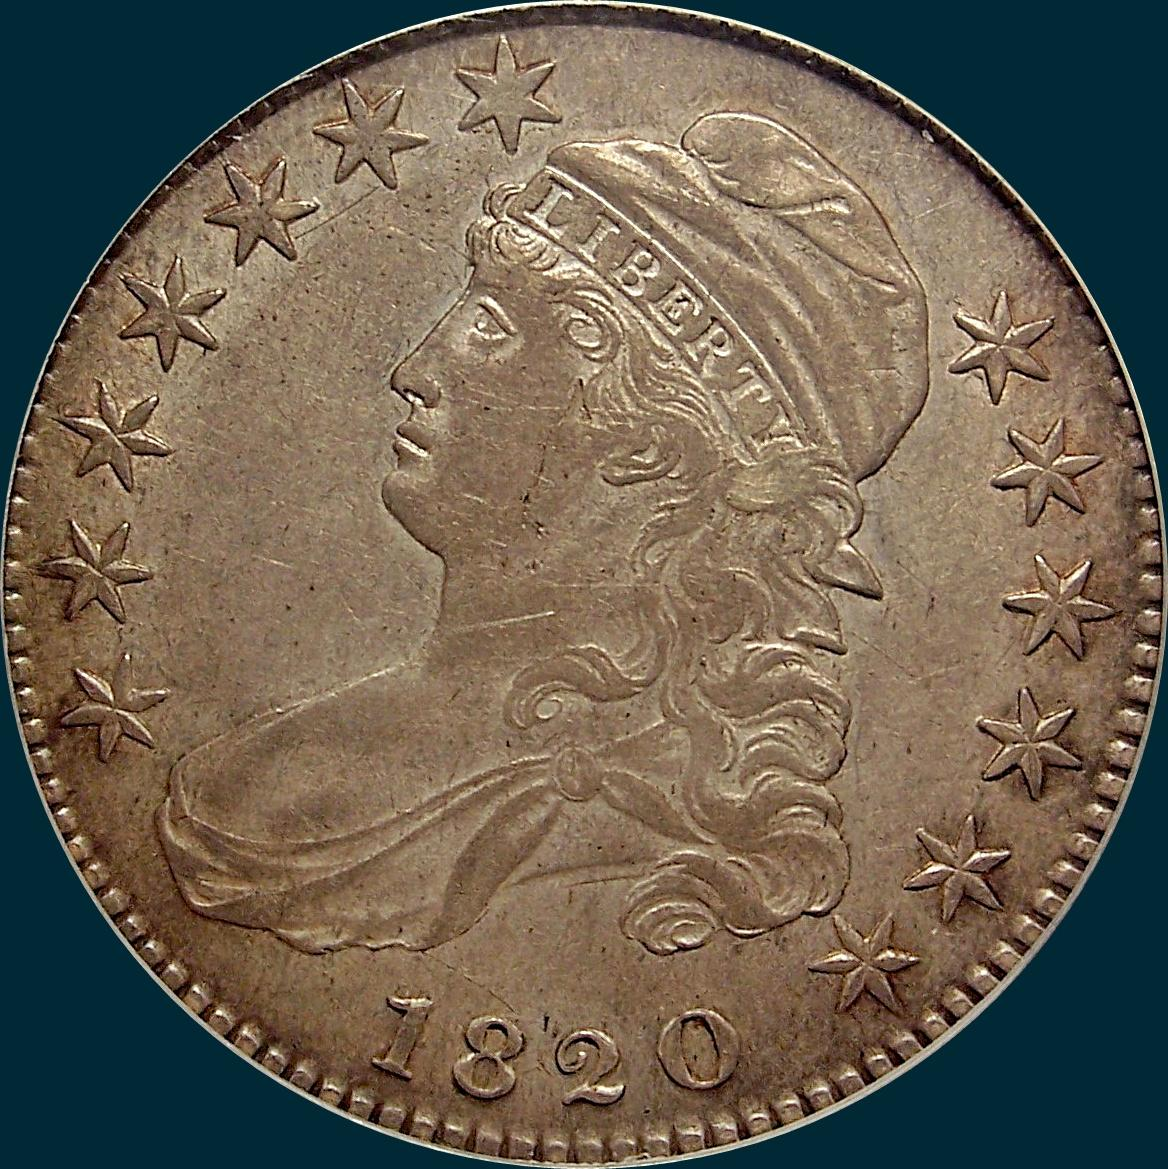 1820, O-103, Small Date, Curled 2, Capped Bust Half Dollar